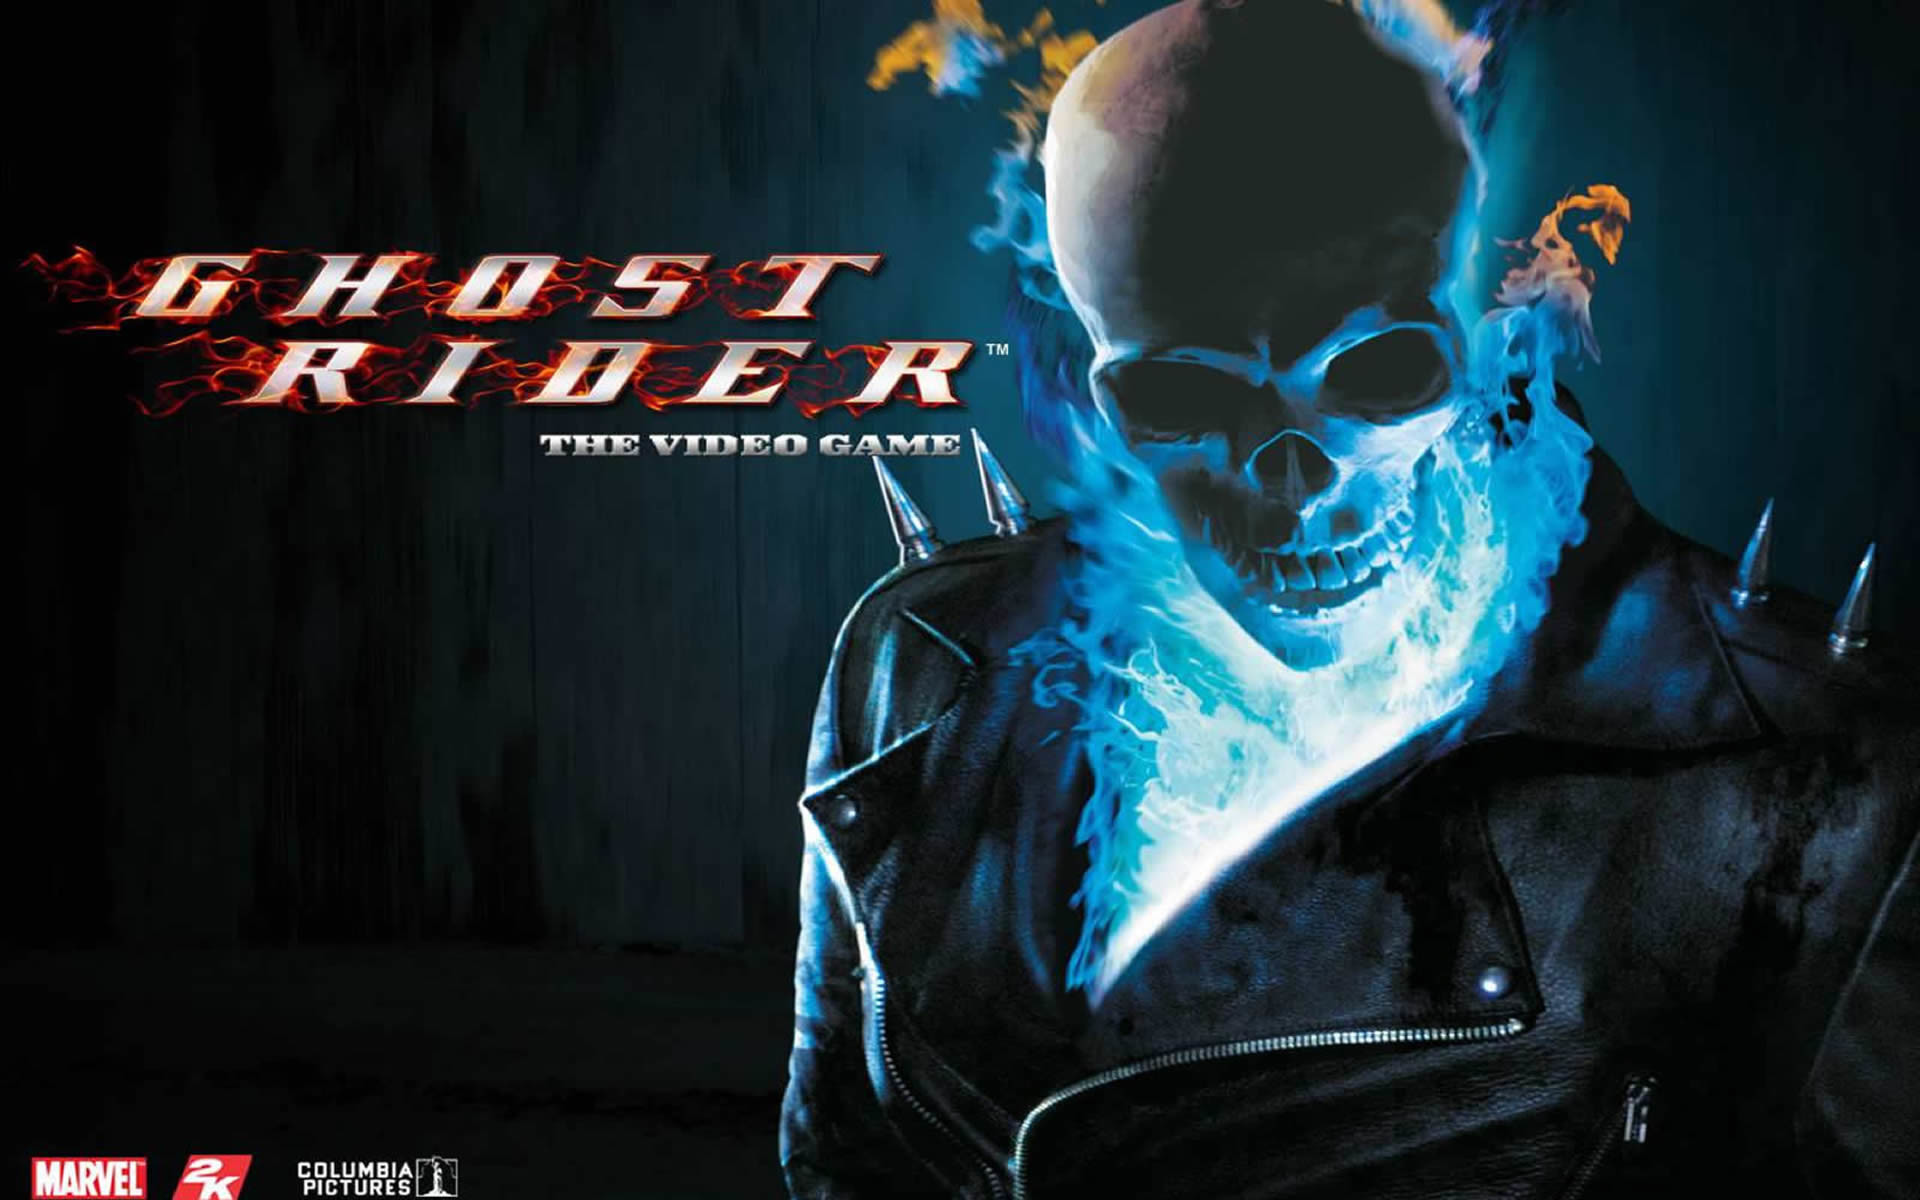 Blue Flame Skull – Superhero Games Wallpaper Image featuring Ghost .